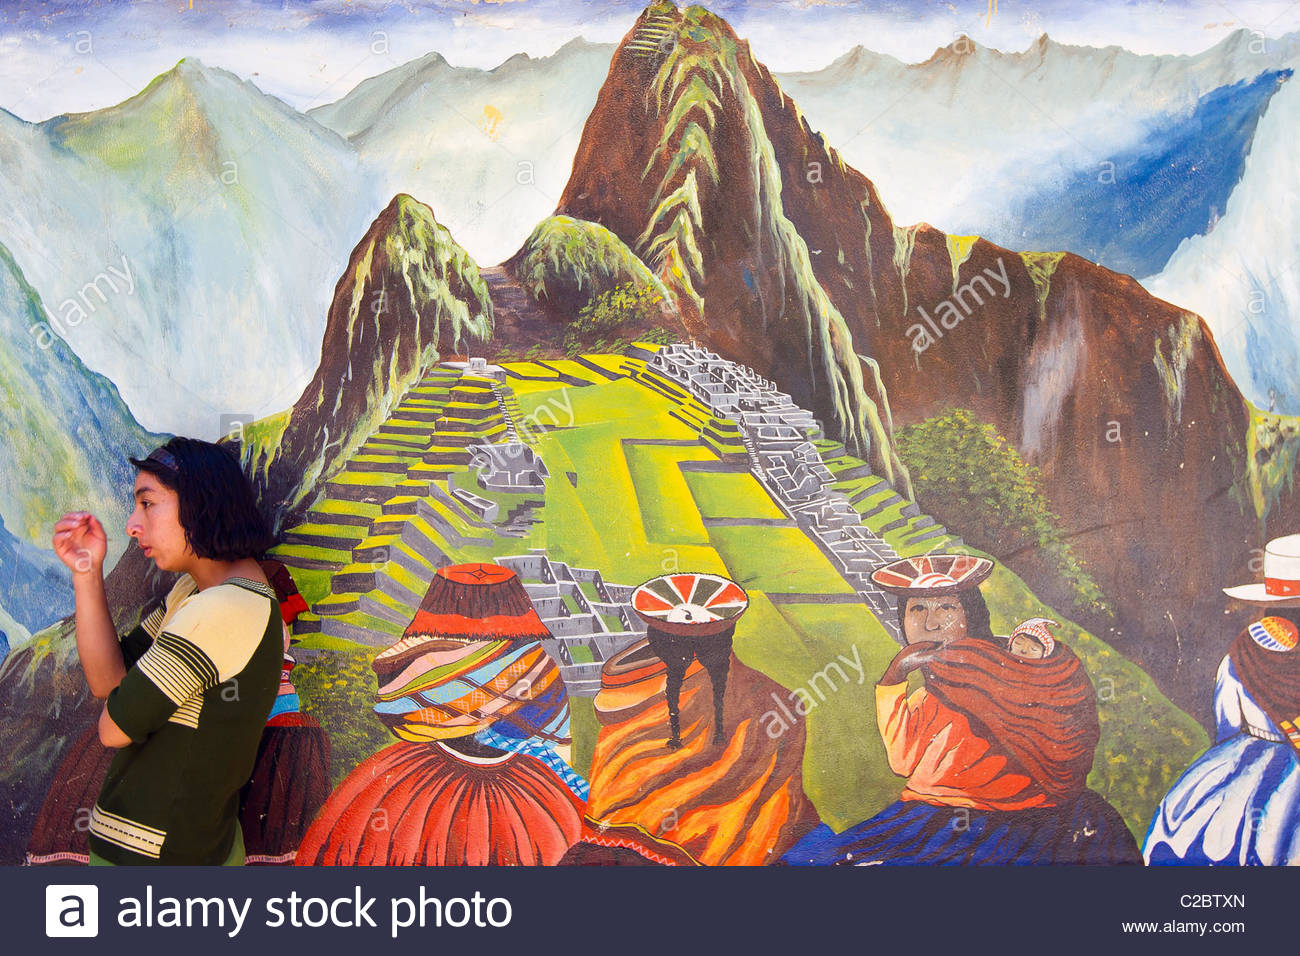 A woman standing in front of a mural painting of Machu Picchu. - Stock Image